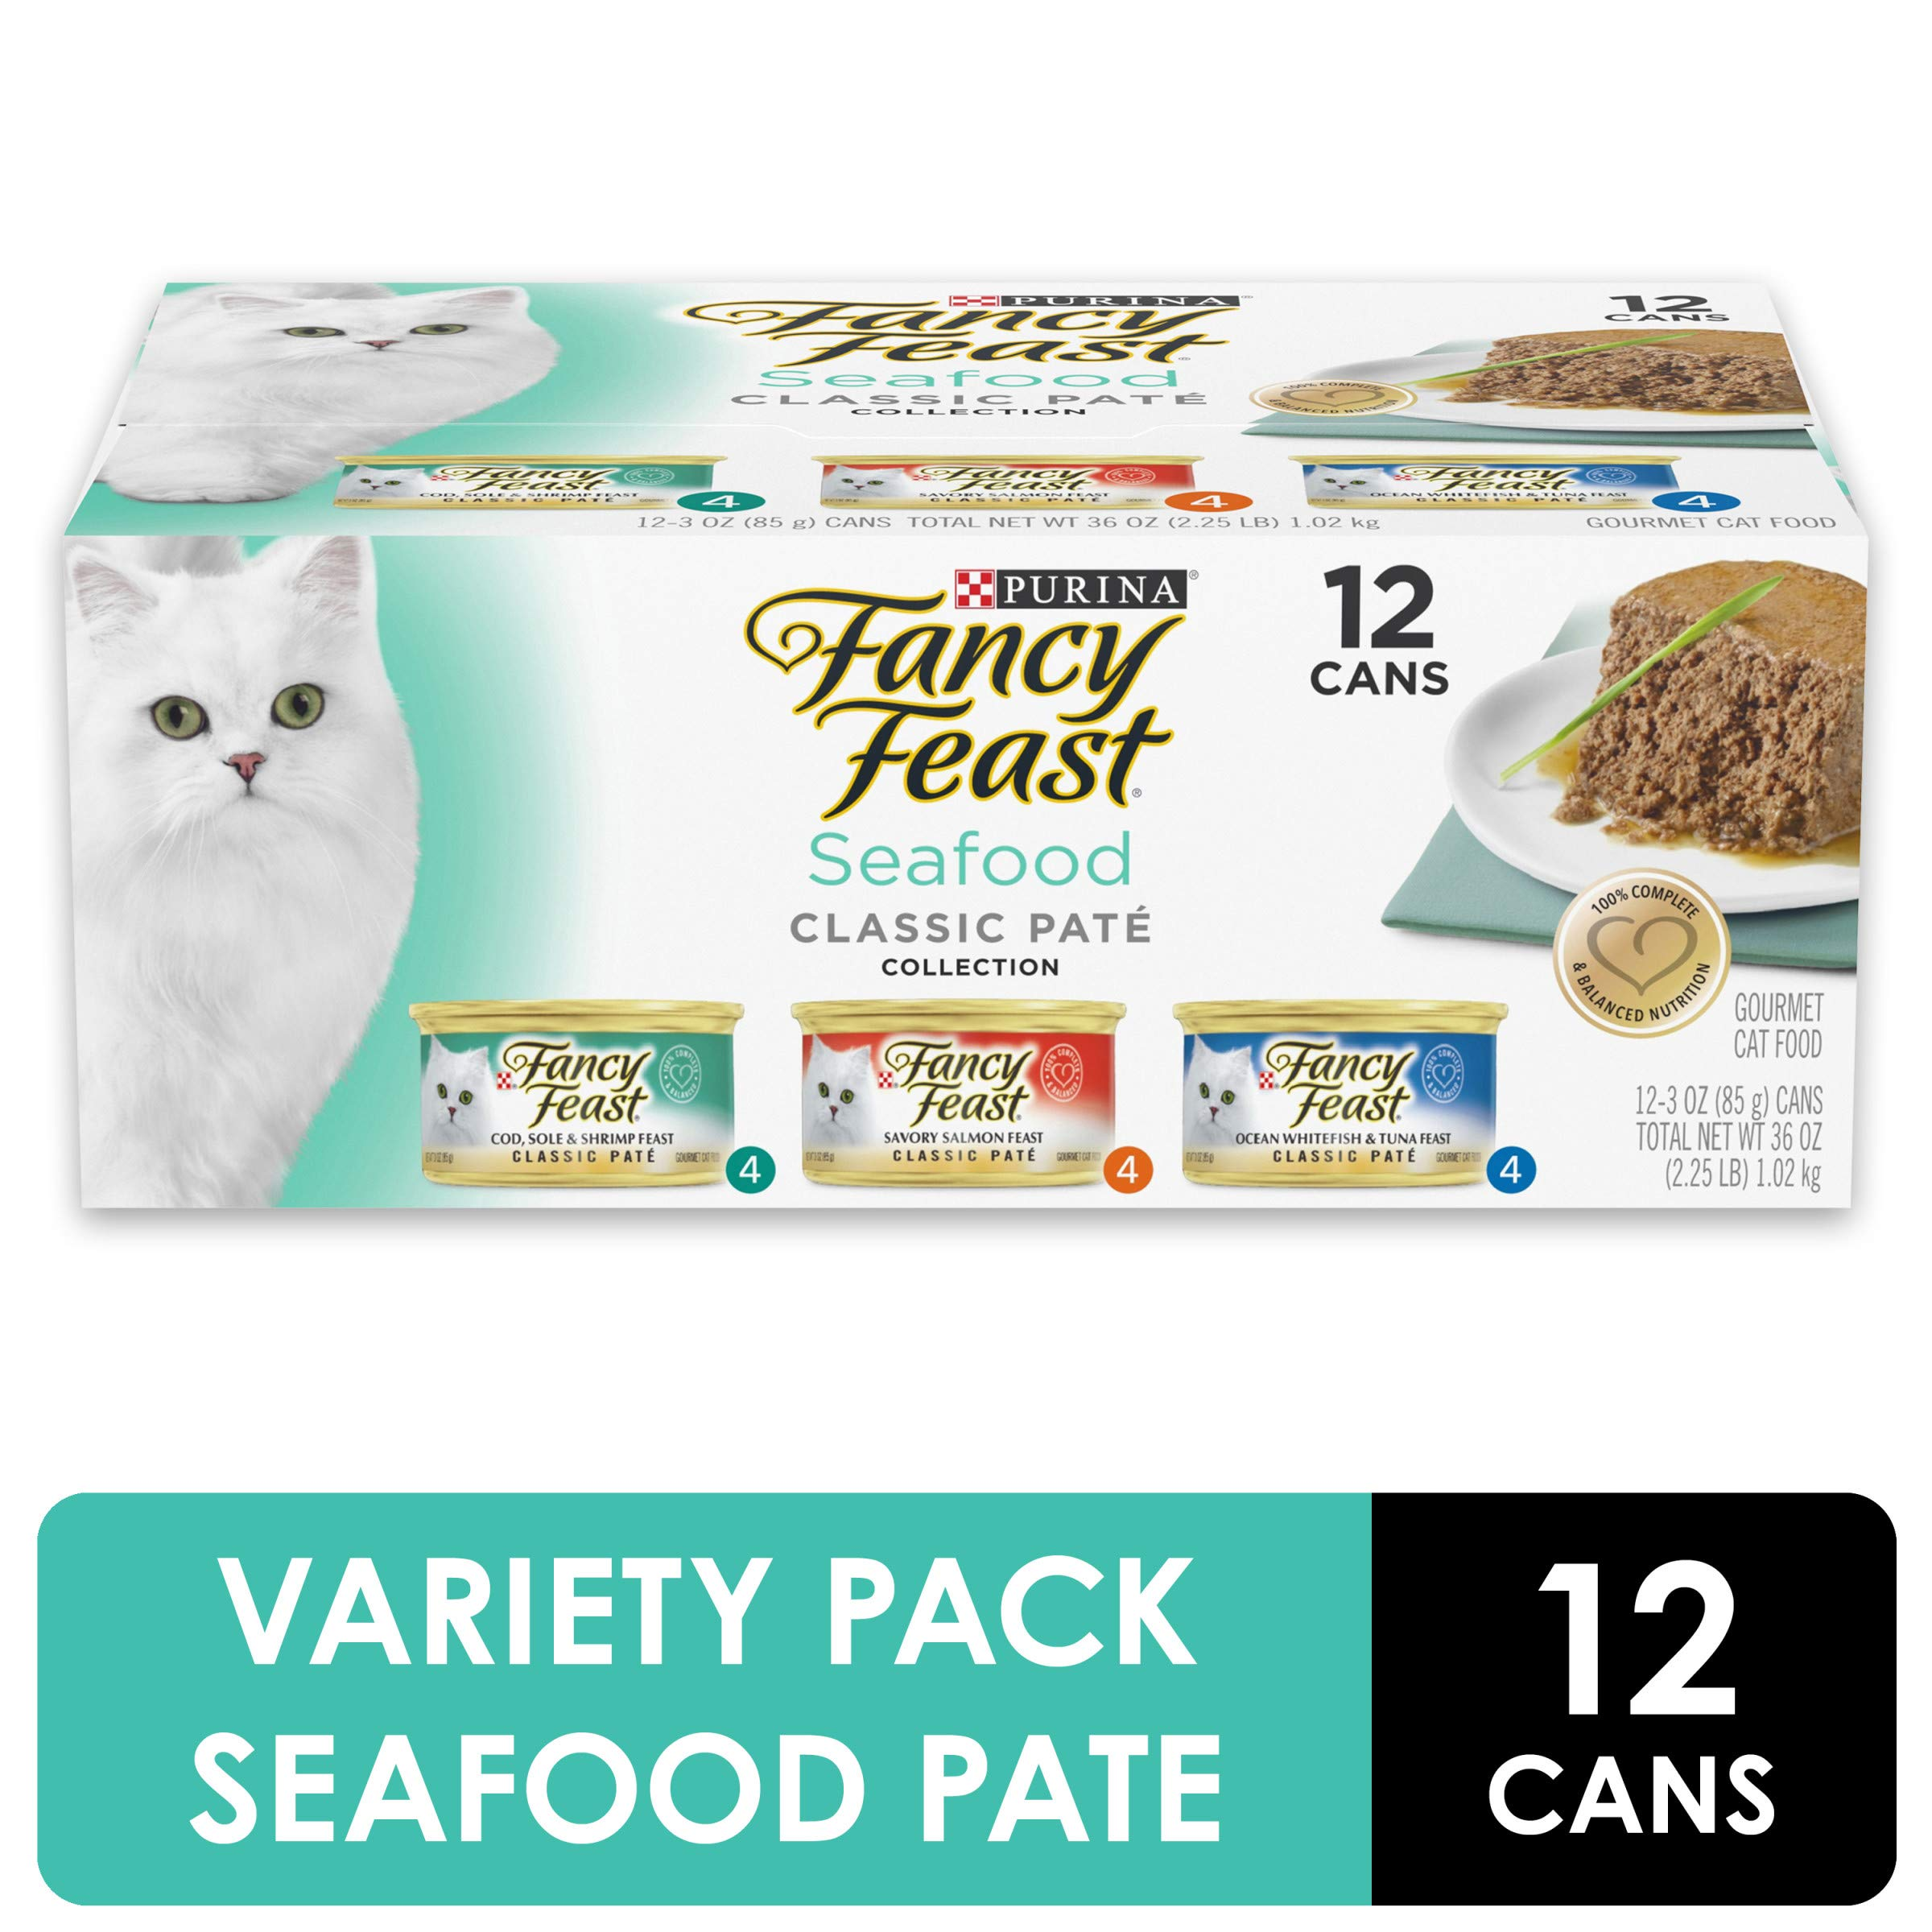 Purina Fancy Feast Grain Free Pate Wet Cat Food Variety Pack, Seafood Classic Pate Collection - (2 Packs of 12) 3 oz. Cans by Purina Fancy Feast